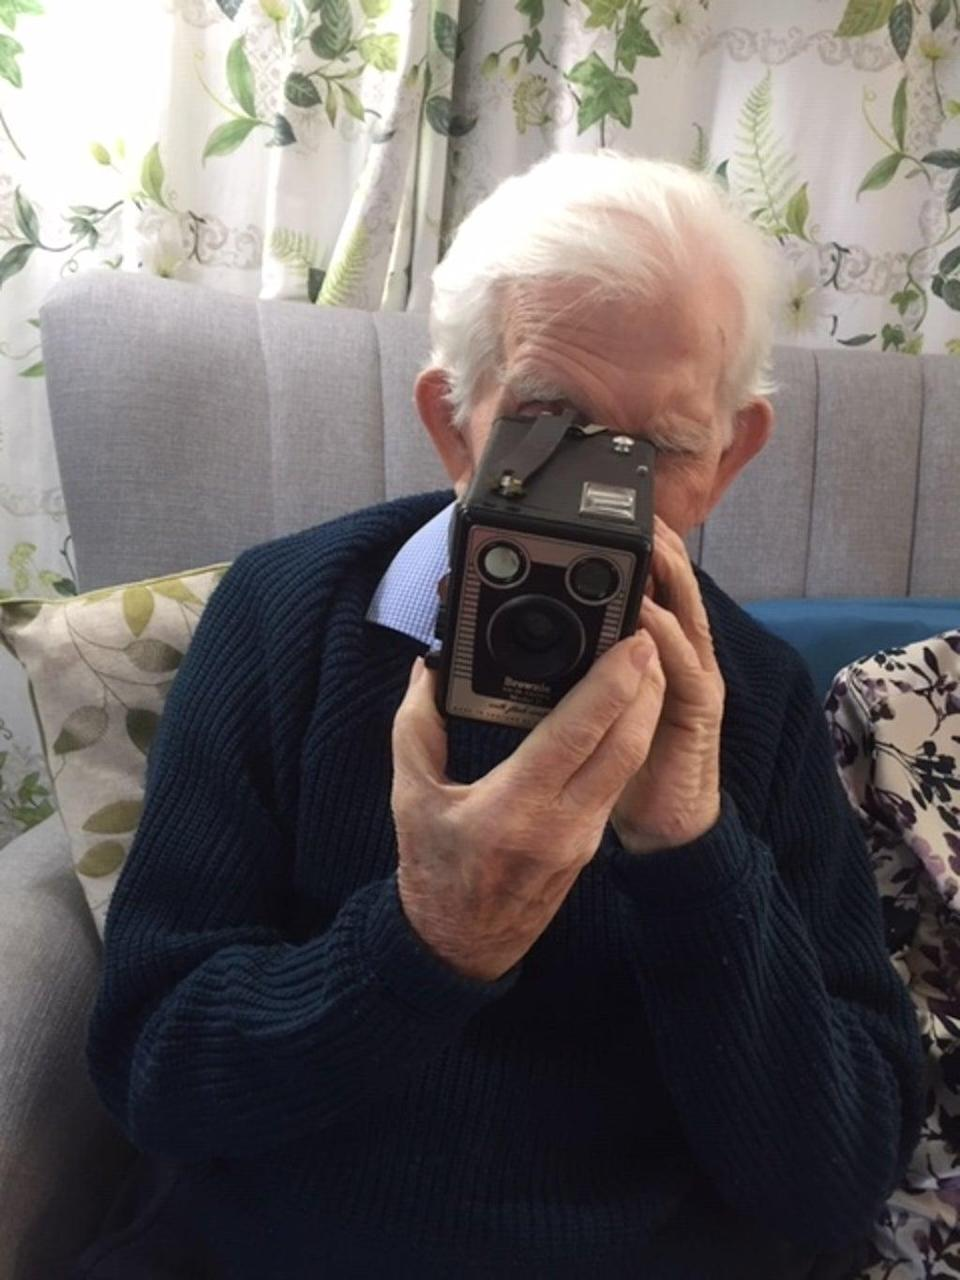 A care home resident using a camera from one of the memory boxes (Wessex Heritage Trust/PA).